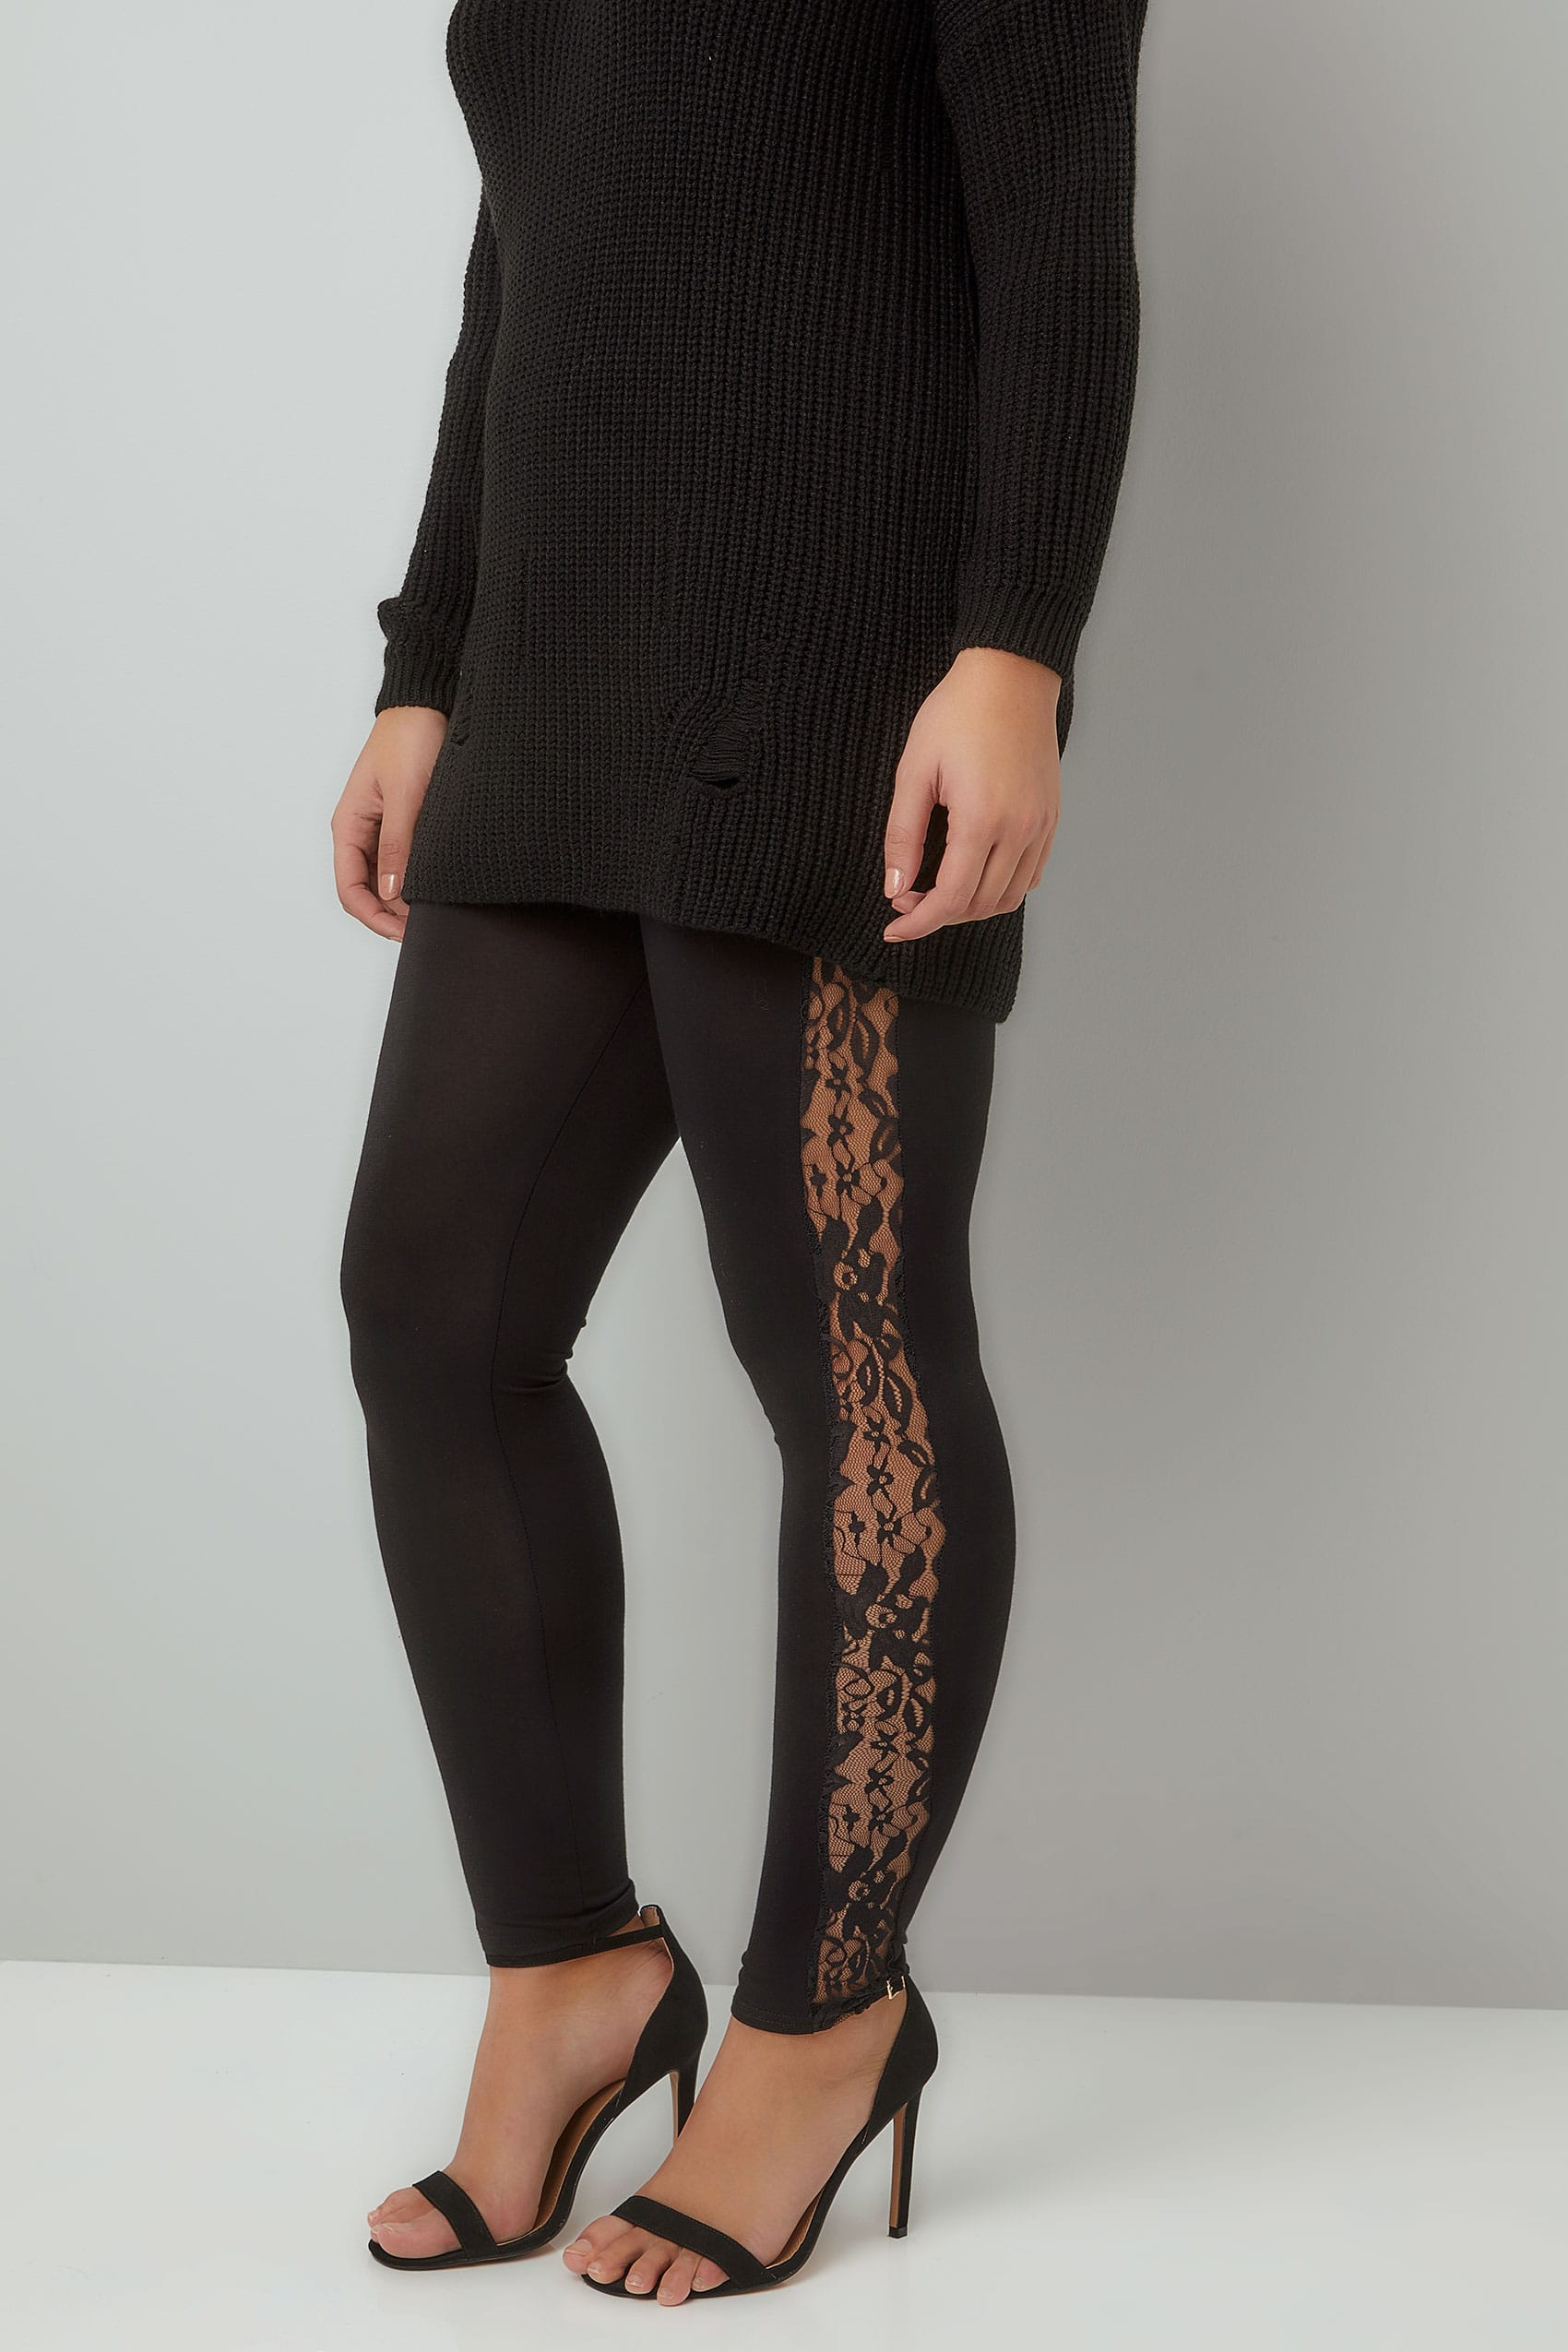 ad47323d13ef7 Black Leggings With Floral Lace Insert, Plus size 16 to 36